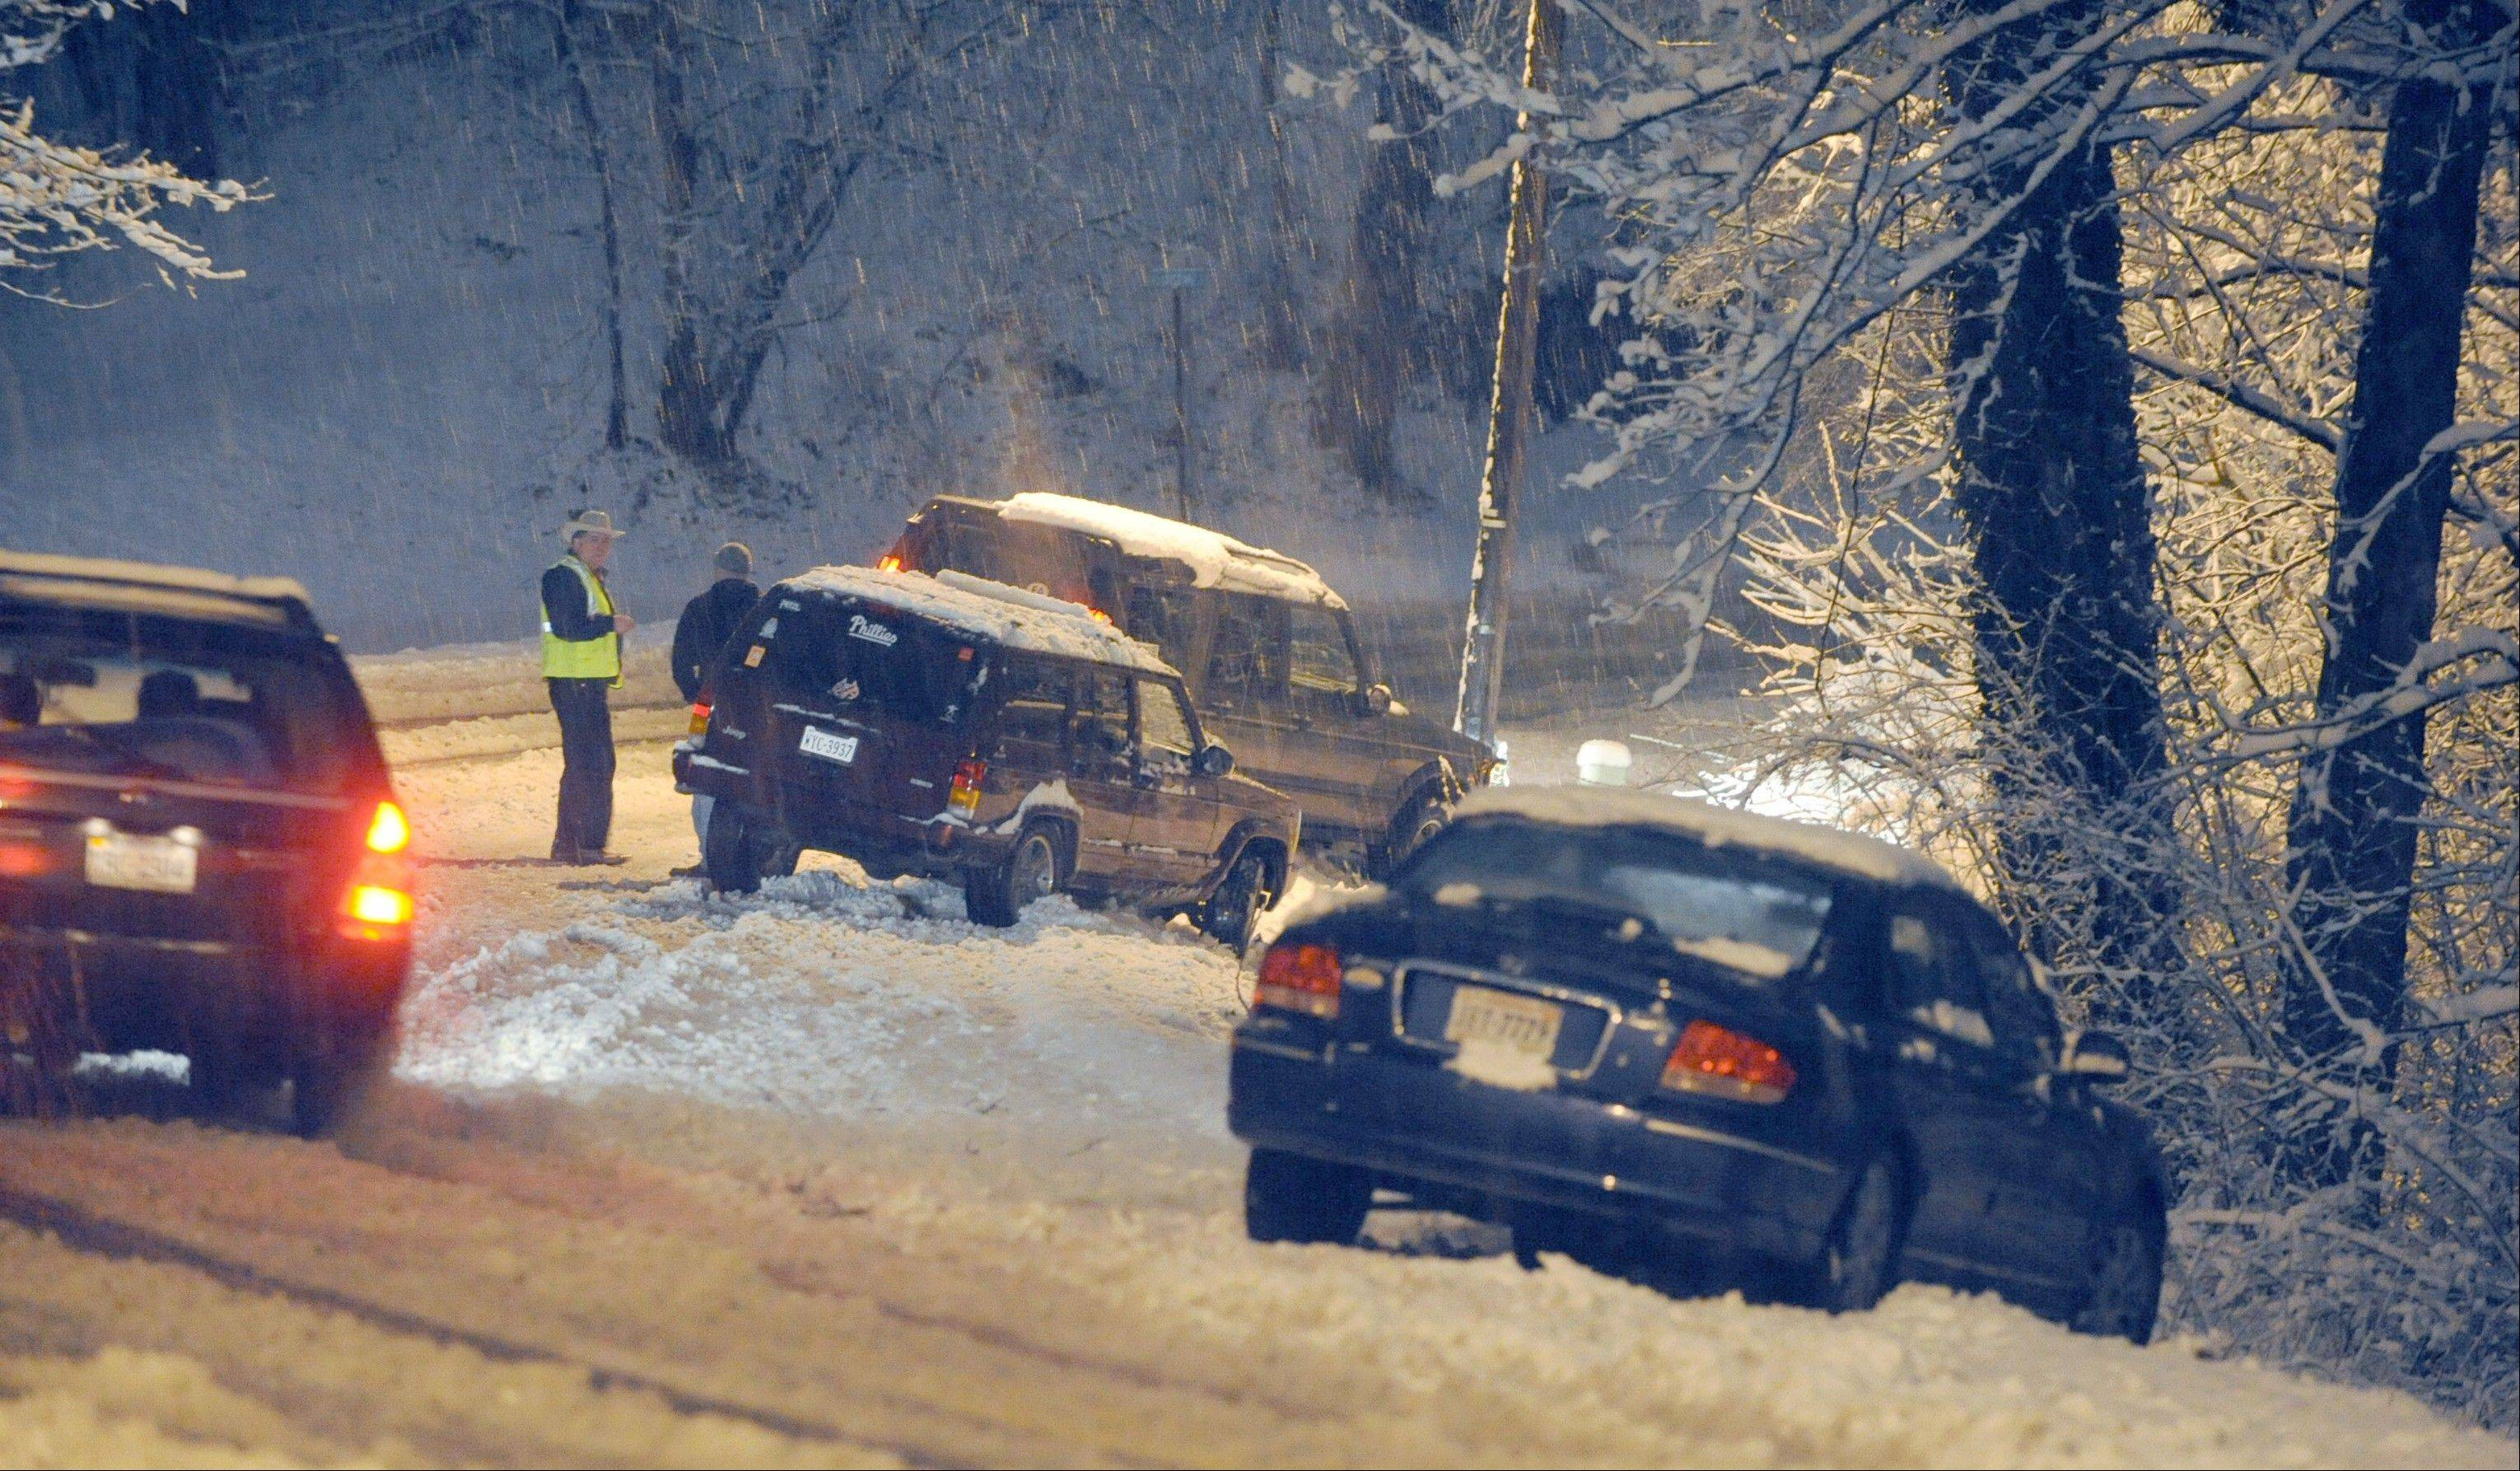 Motorists slide off the road along Garst Mill Road in Roanoke County, Va. during a snowstorm on Thursday, Jan. 17, 2013. Icy roads remain a concern Friday morning and some school systems decided to open late.